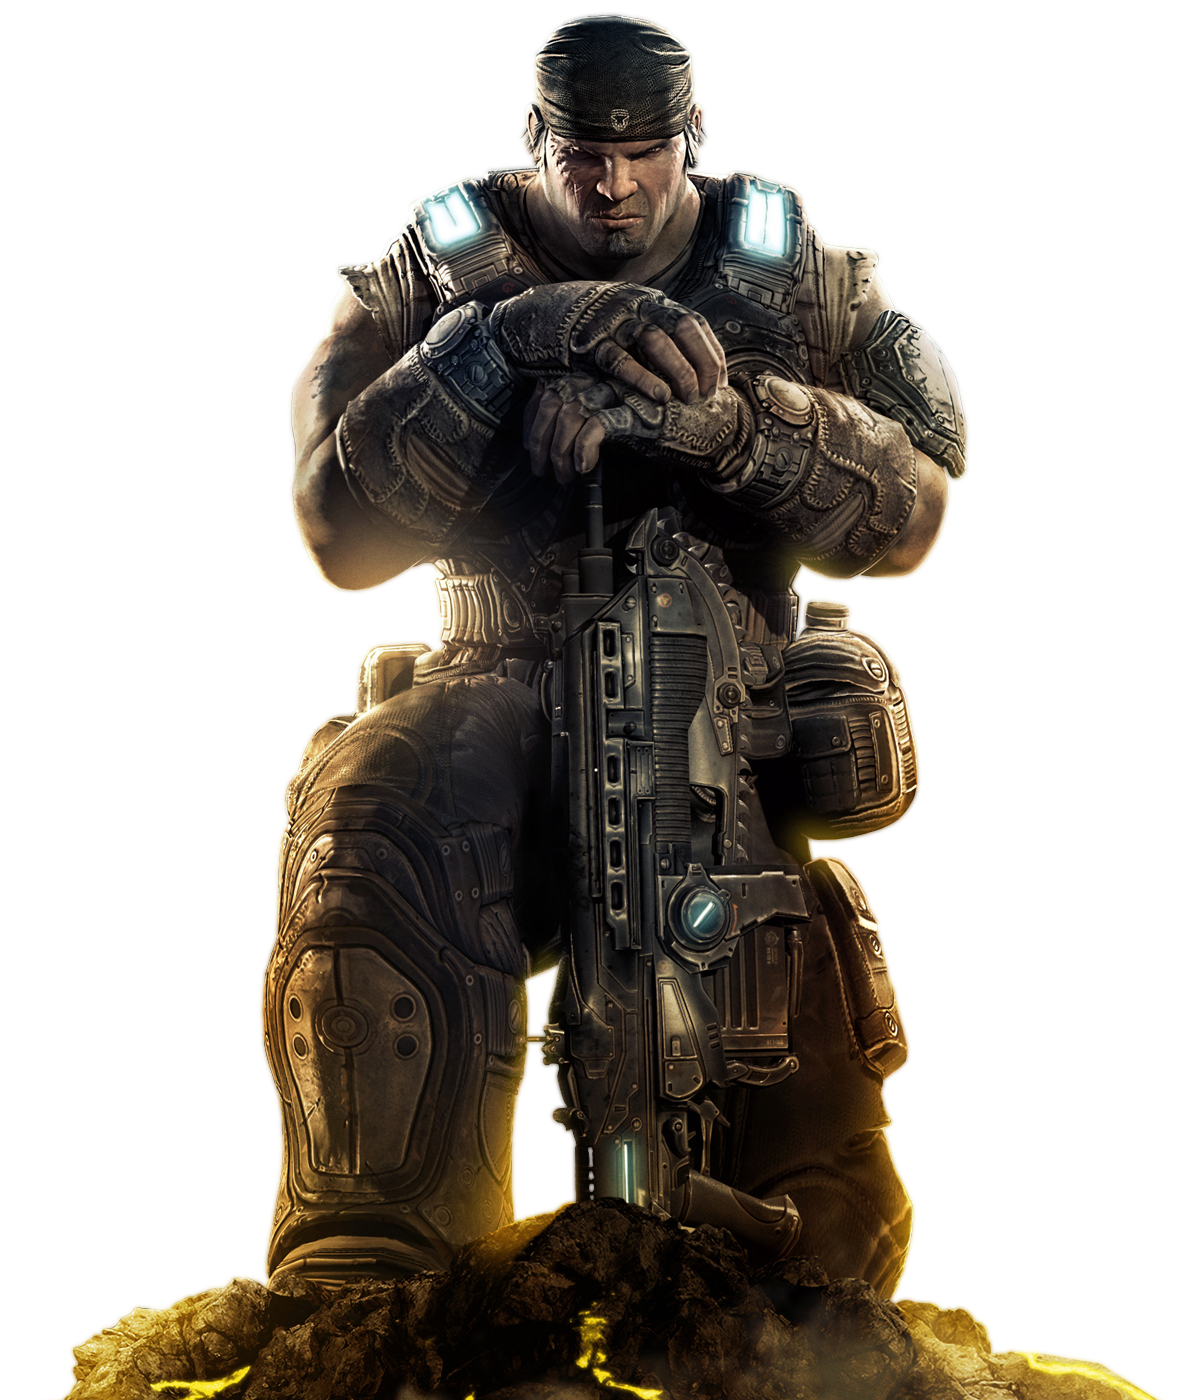 Gears of War PNG Image - Gears Of War PNG